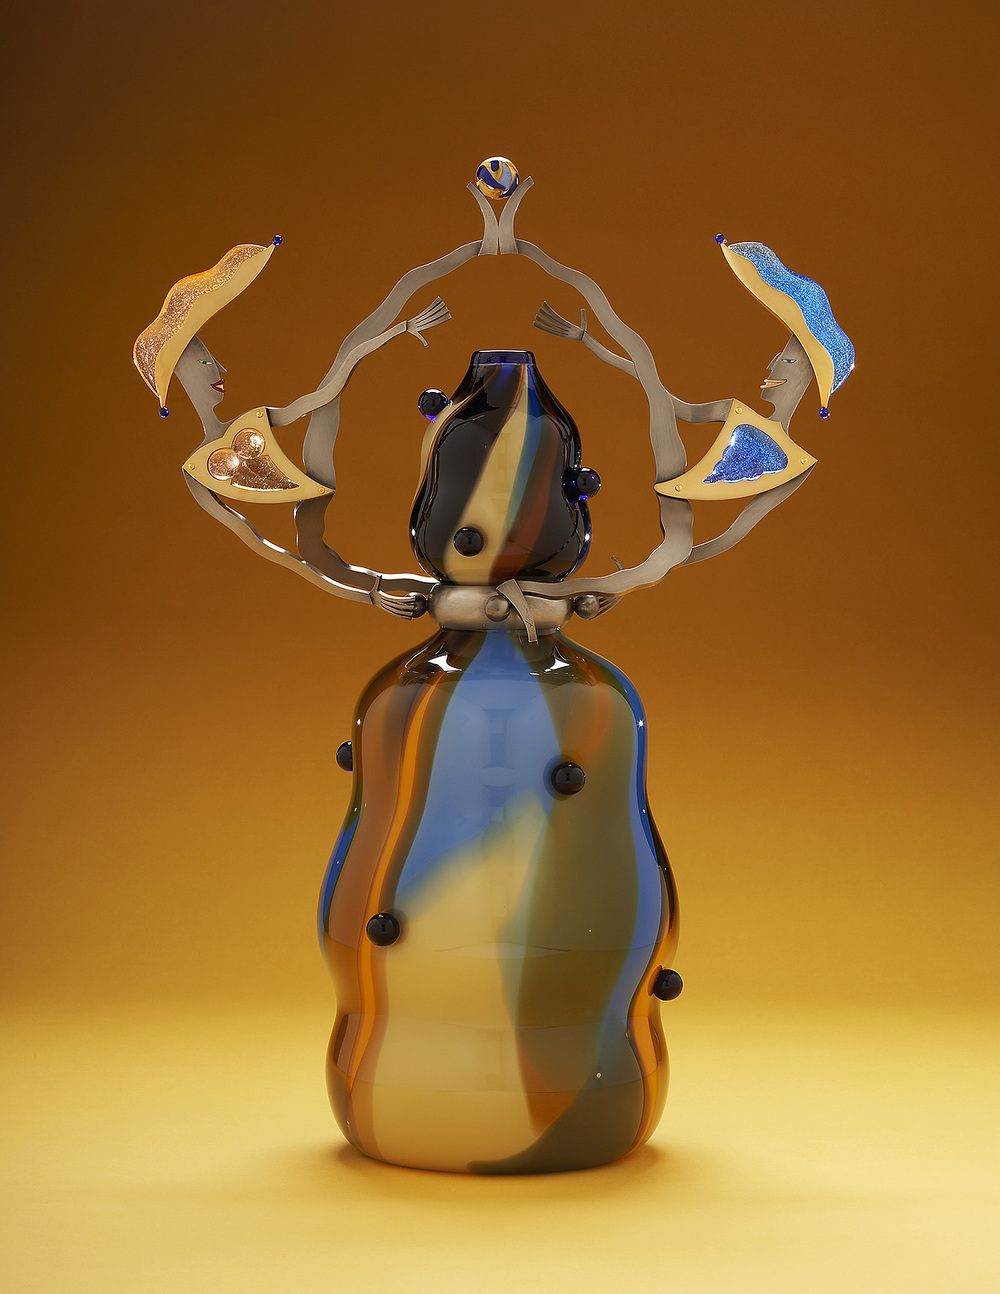 Magnetism   2006. Blown glass, nickel and gold-plated bronze, pate de verre, Vitrolite. 24 x 16 x 9""